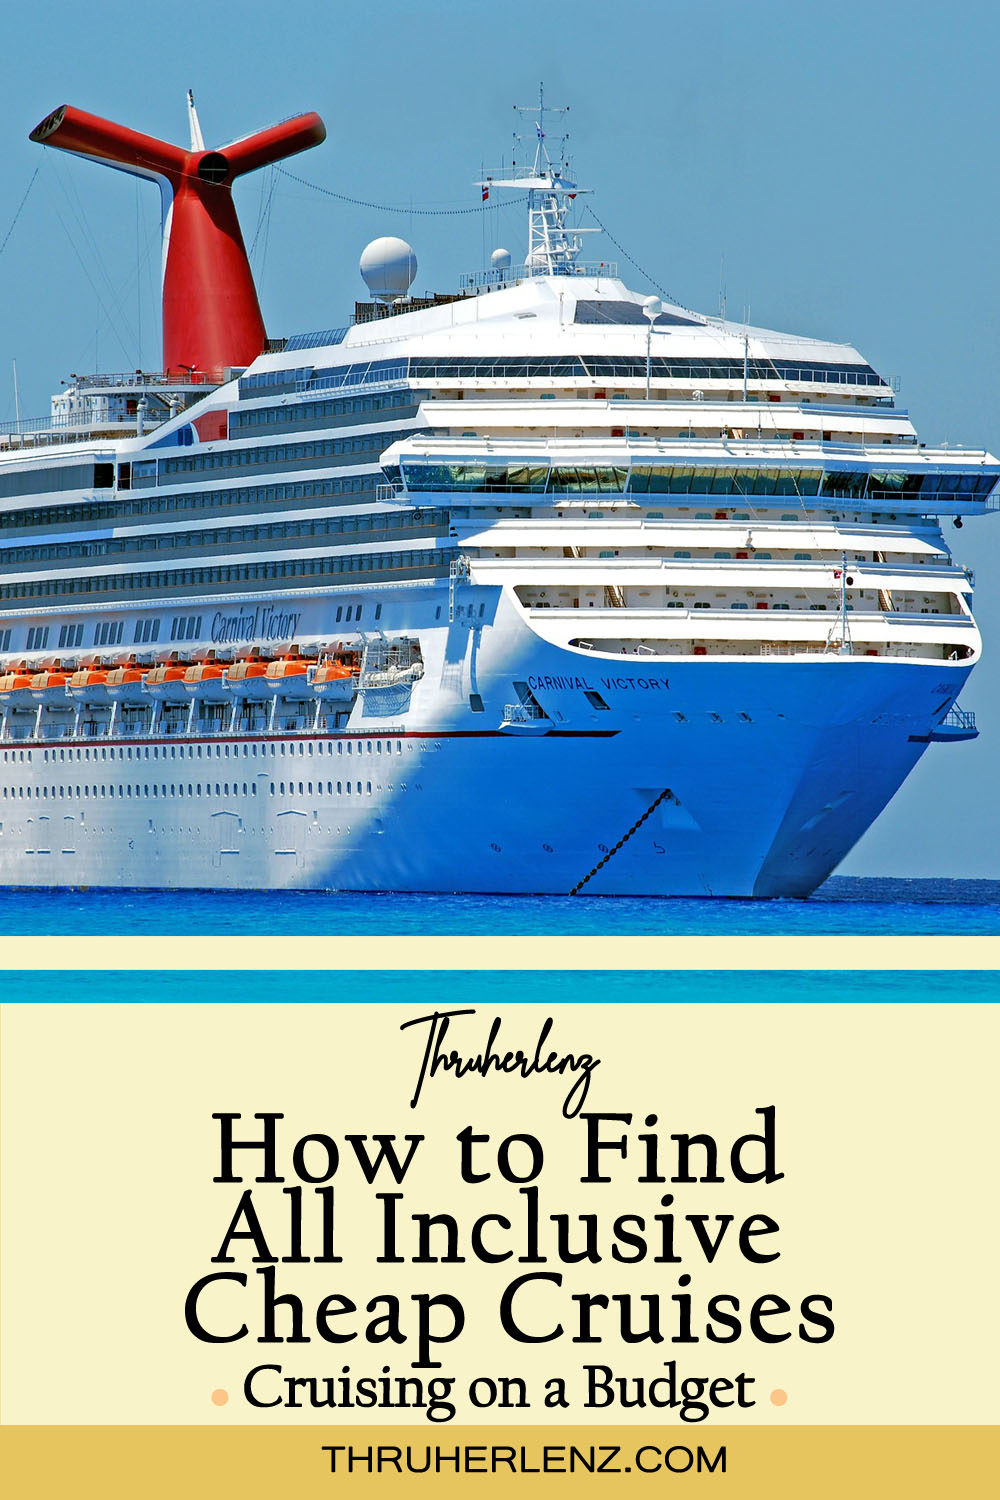 How to Find All Inclusive Cheap Cruises